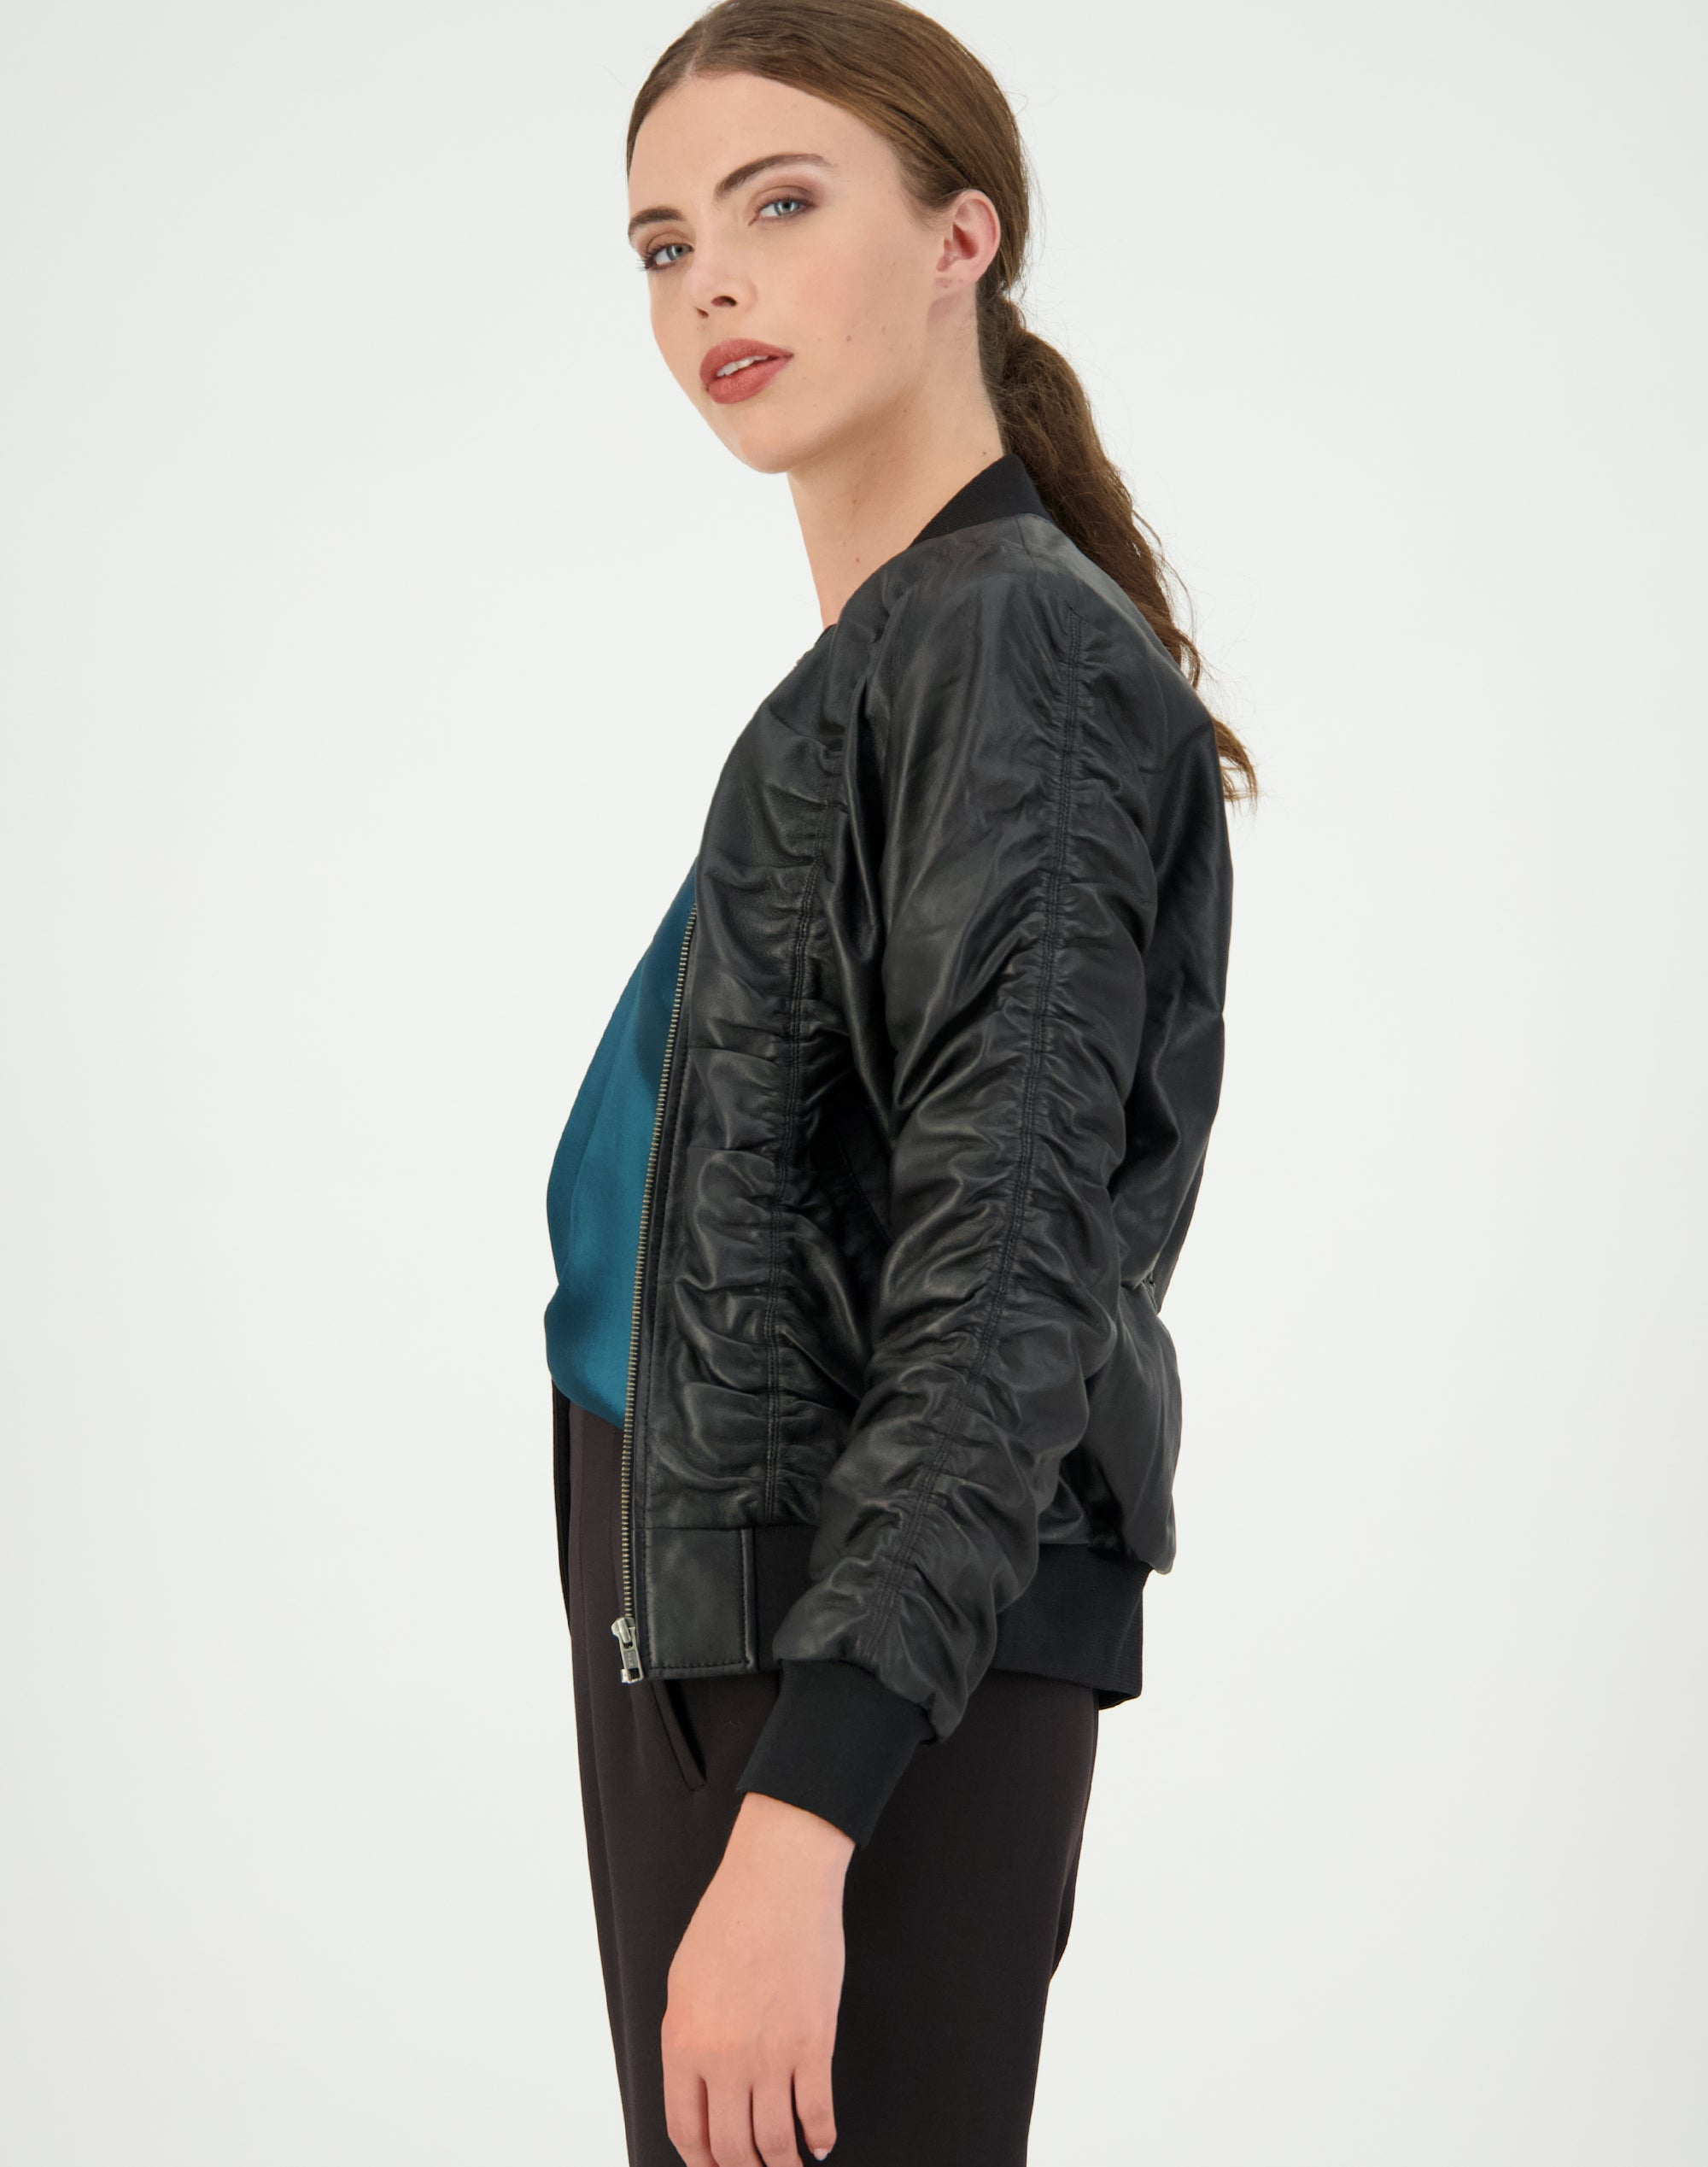 Rouched Leather Jacket